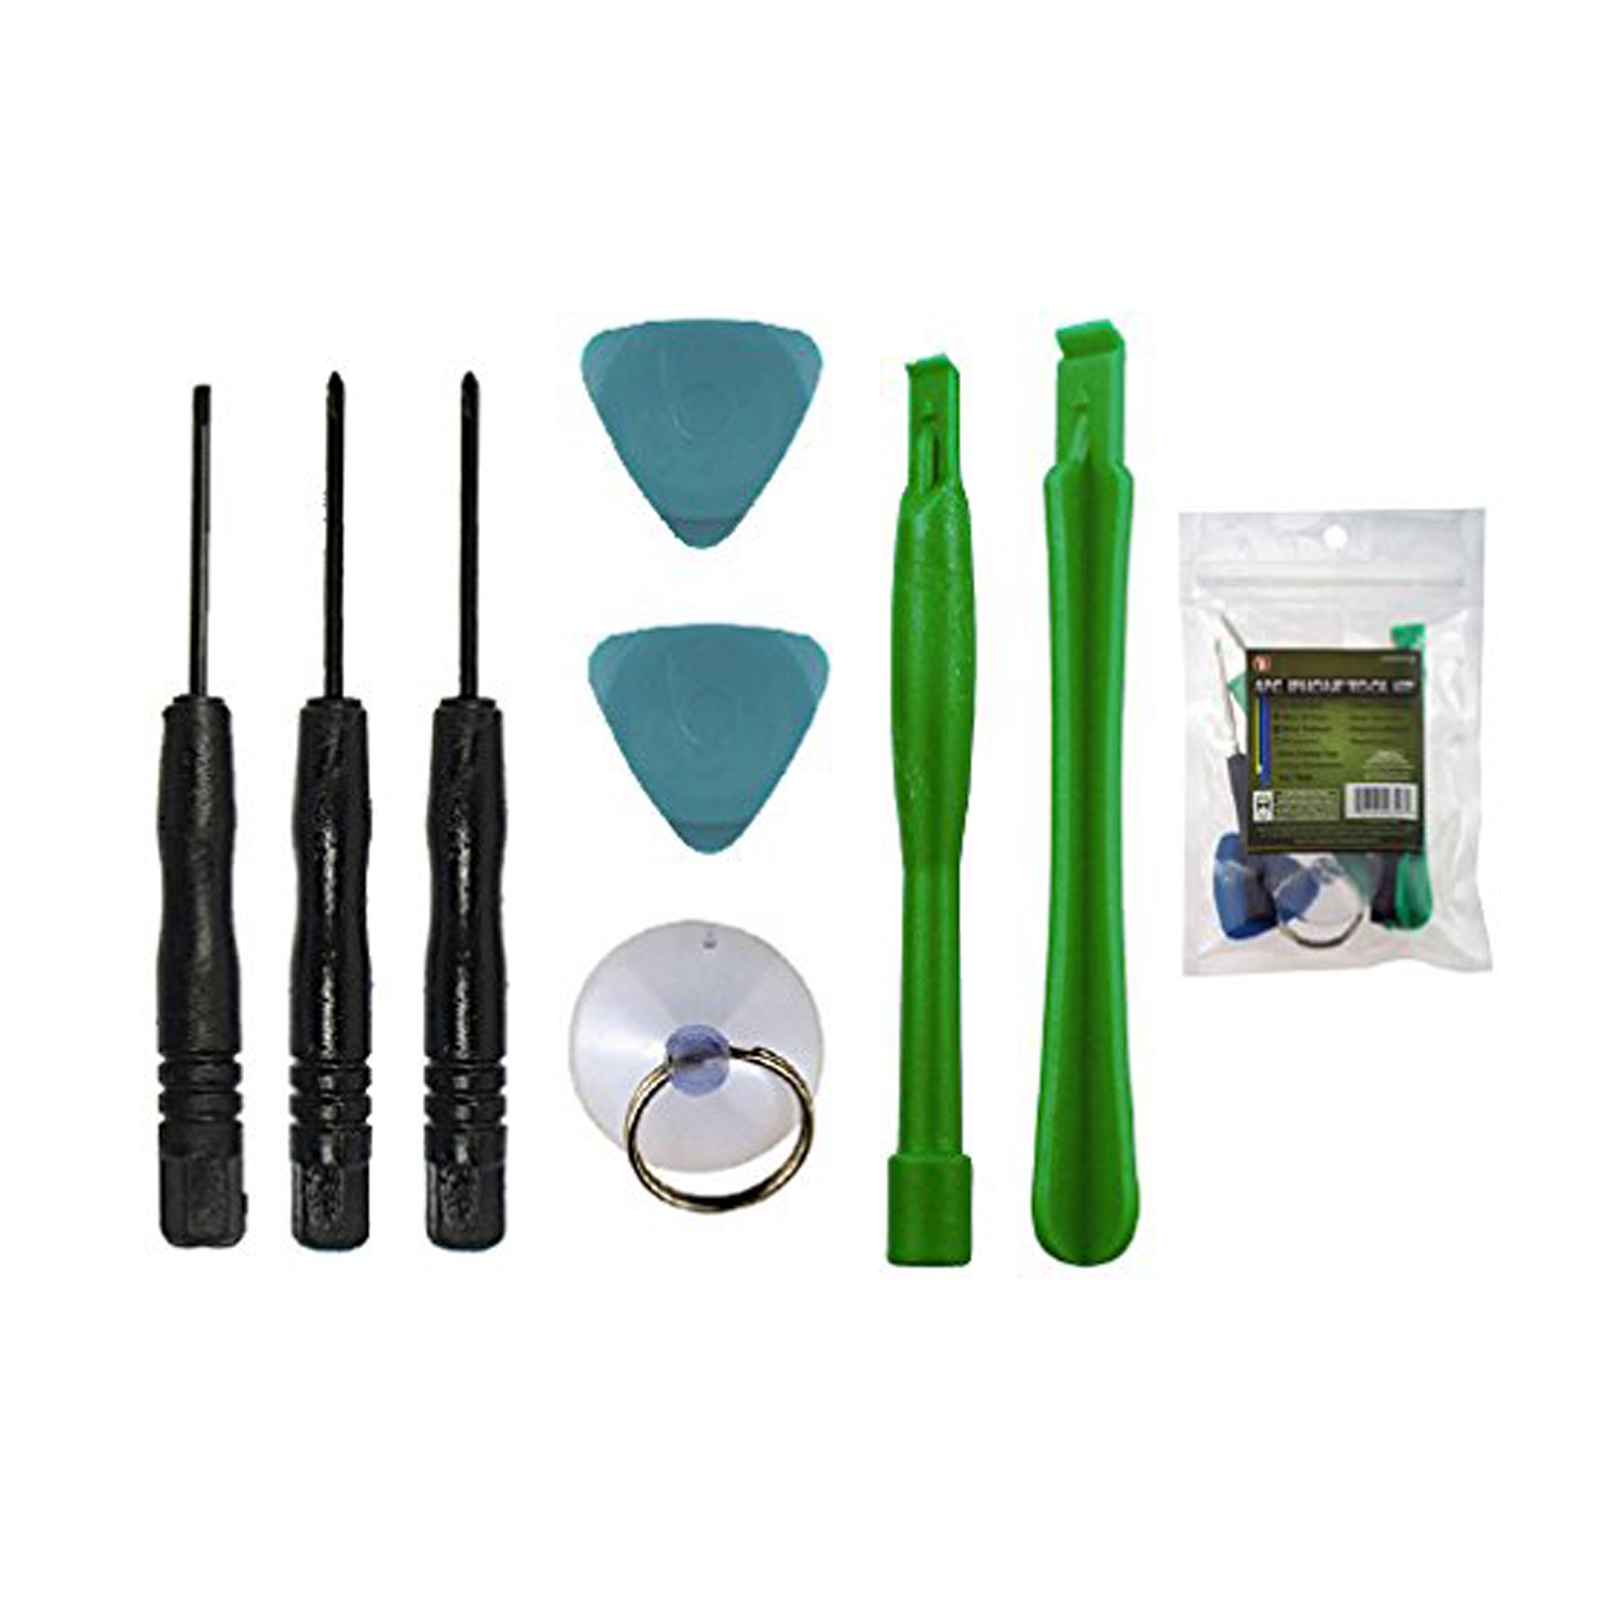 Professional Grade Smart Phone and Tablet Repair Tool Kit